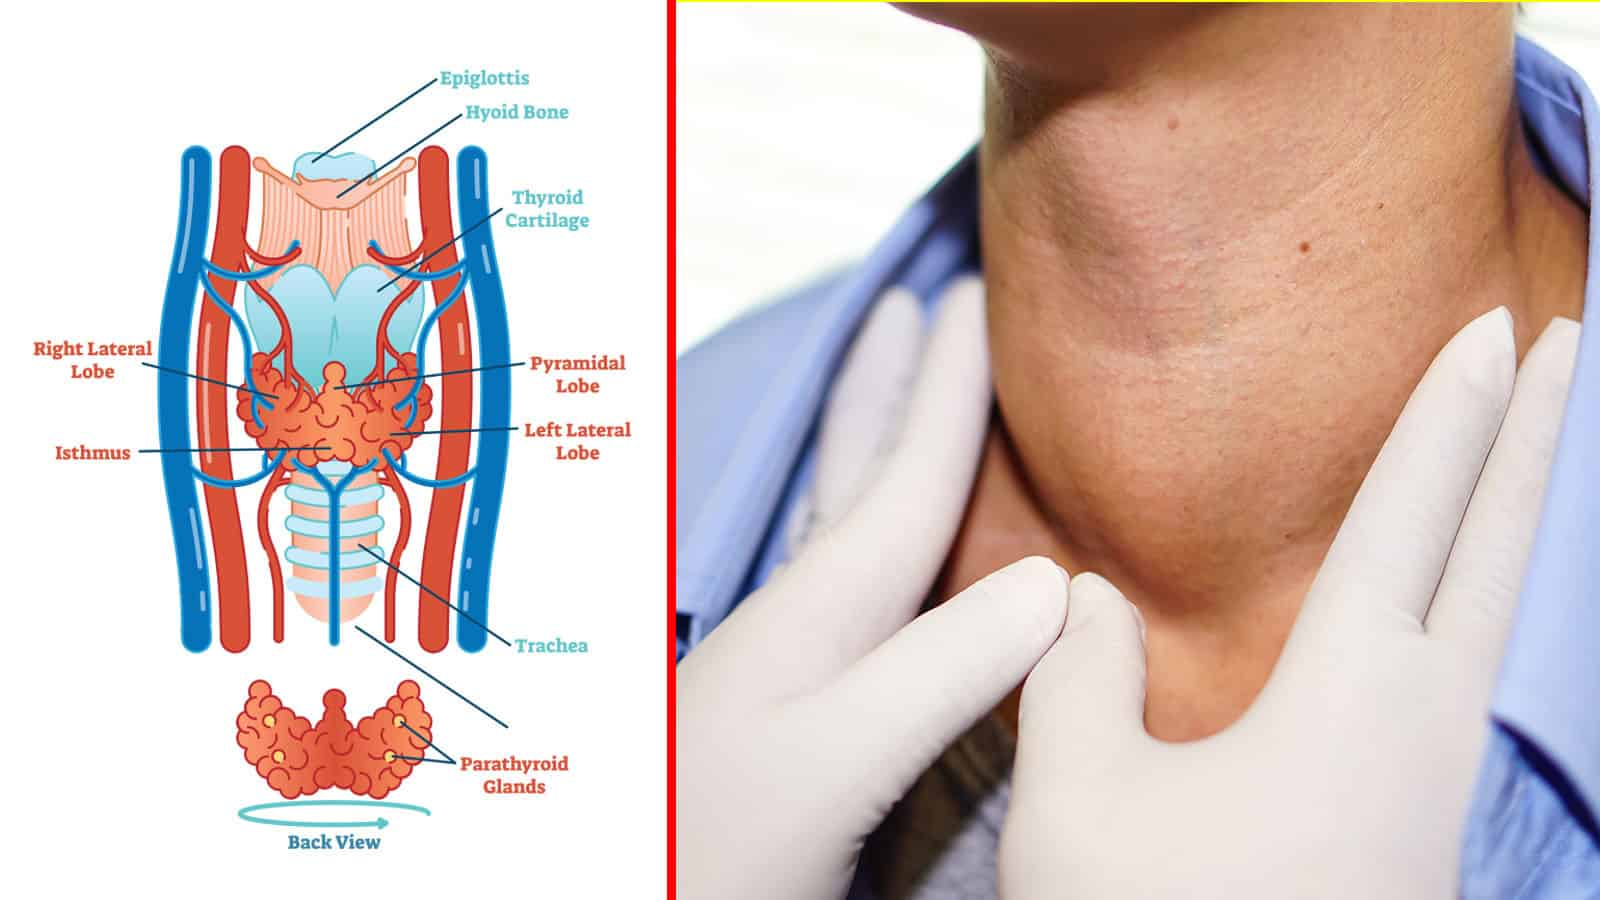 10 Signs Of Thyroid Cancer That Most People Miss